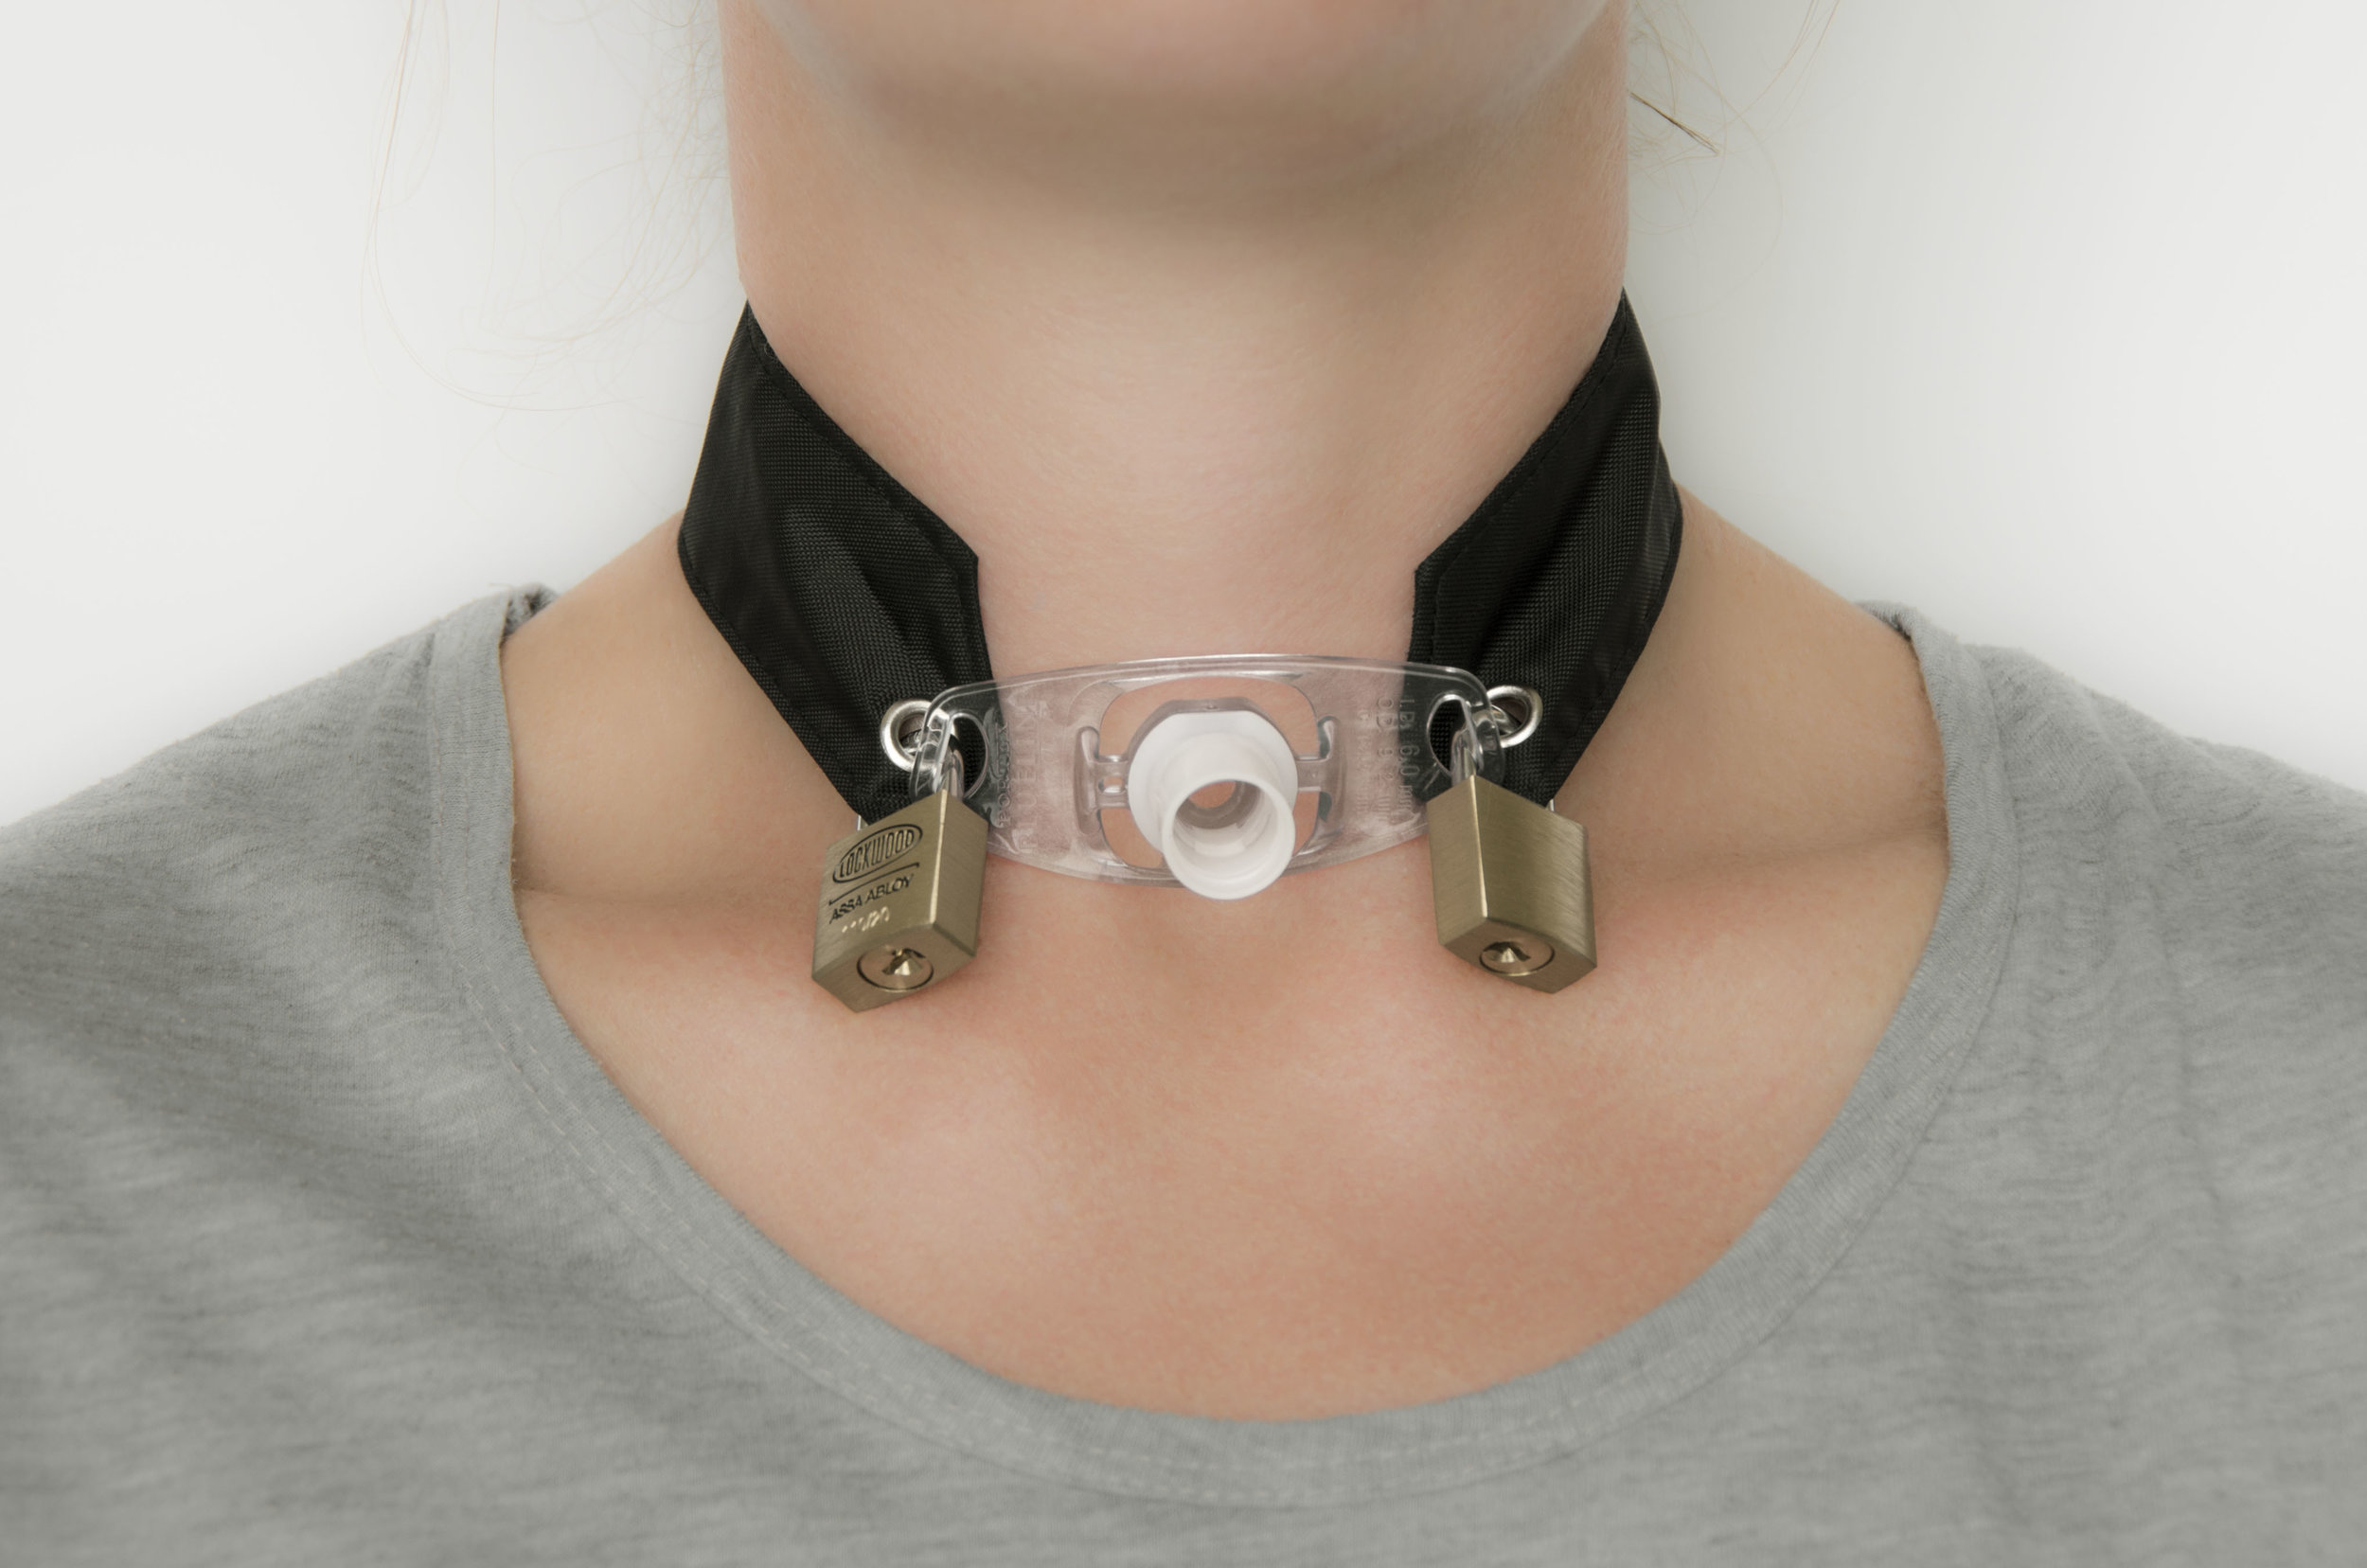 Co-design to understand the tracheostomy product experiences of long-term tracheostomy users